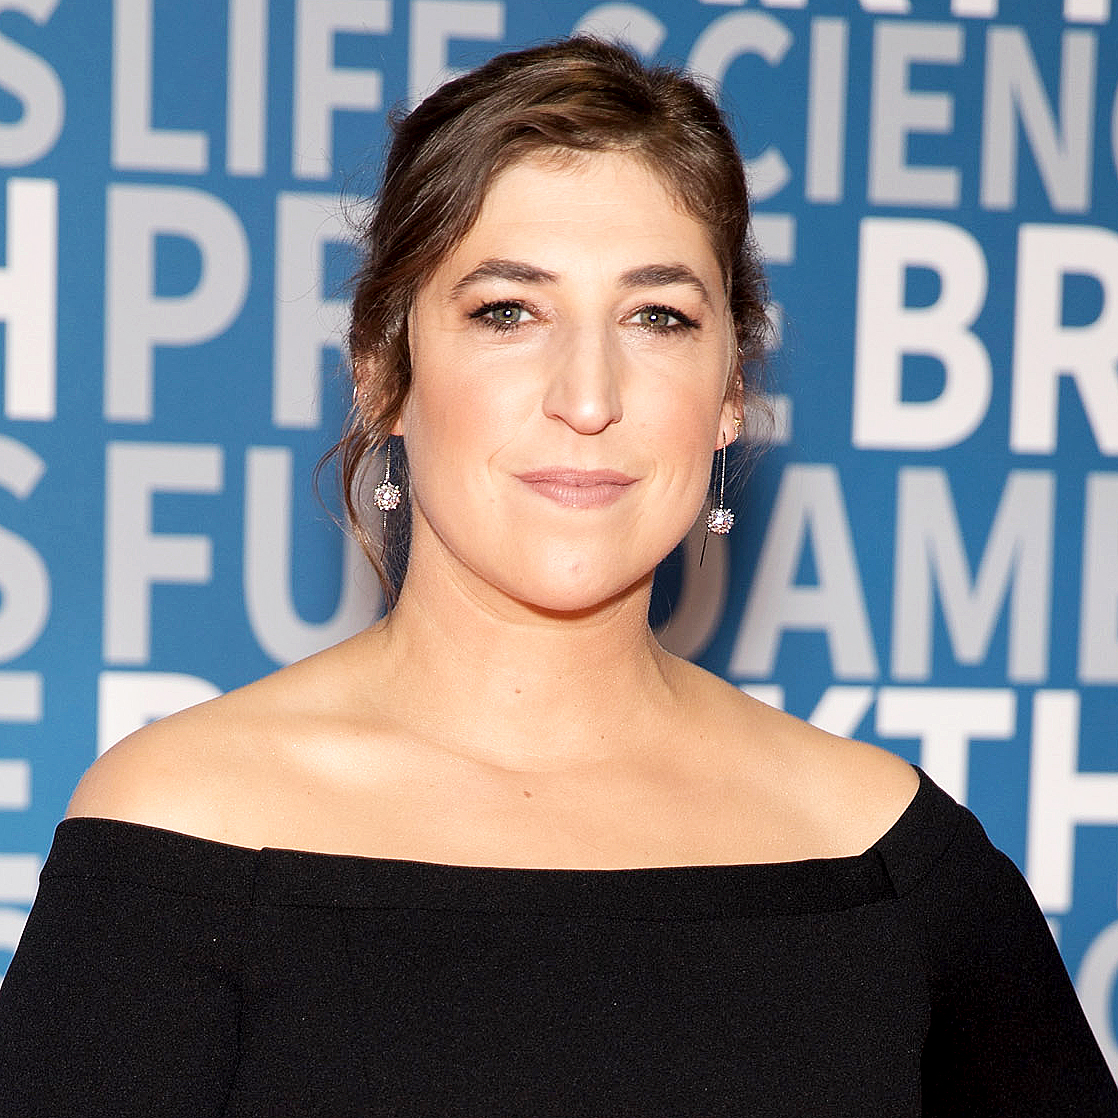 """MAYIM-BIALIK - Bialik shared a black-and-white photo of Singleton on Instagram, calling him a """"trailblazer and presence."""" """"Not only was he the first African American to be nominated for Best Director at the Academy Awards, he was also the youngest at 24. Incredible and inspirational,"""" she wrote."""